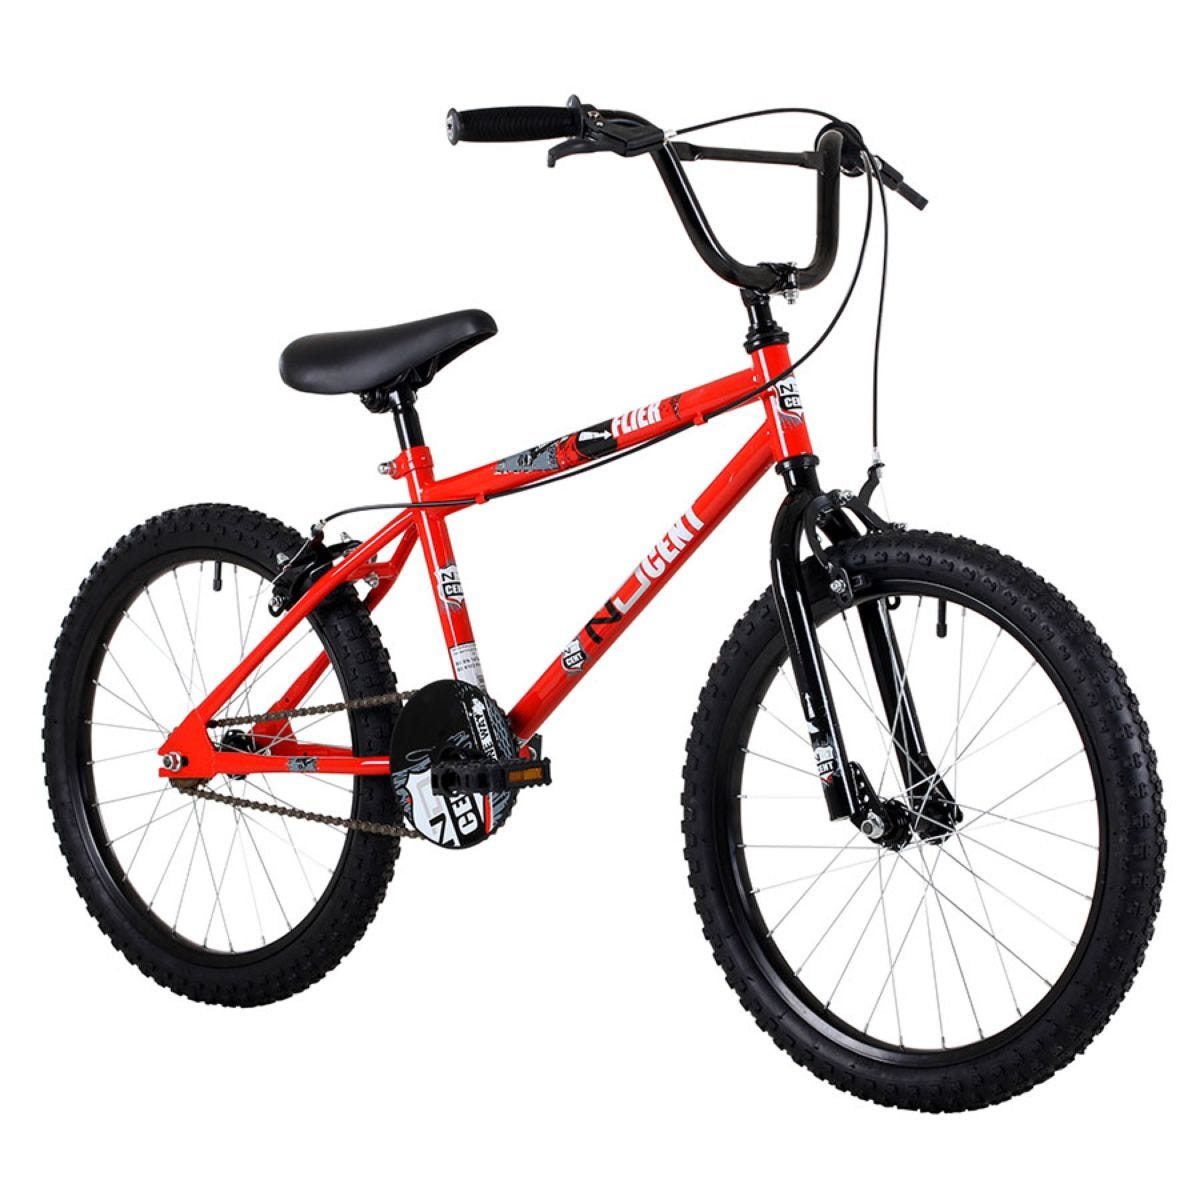 Ndcent Flier BMX Boys Bike 20-Inch - Red